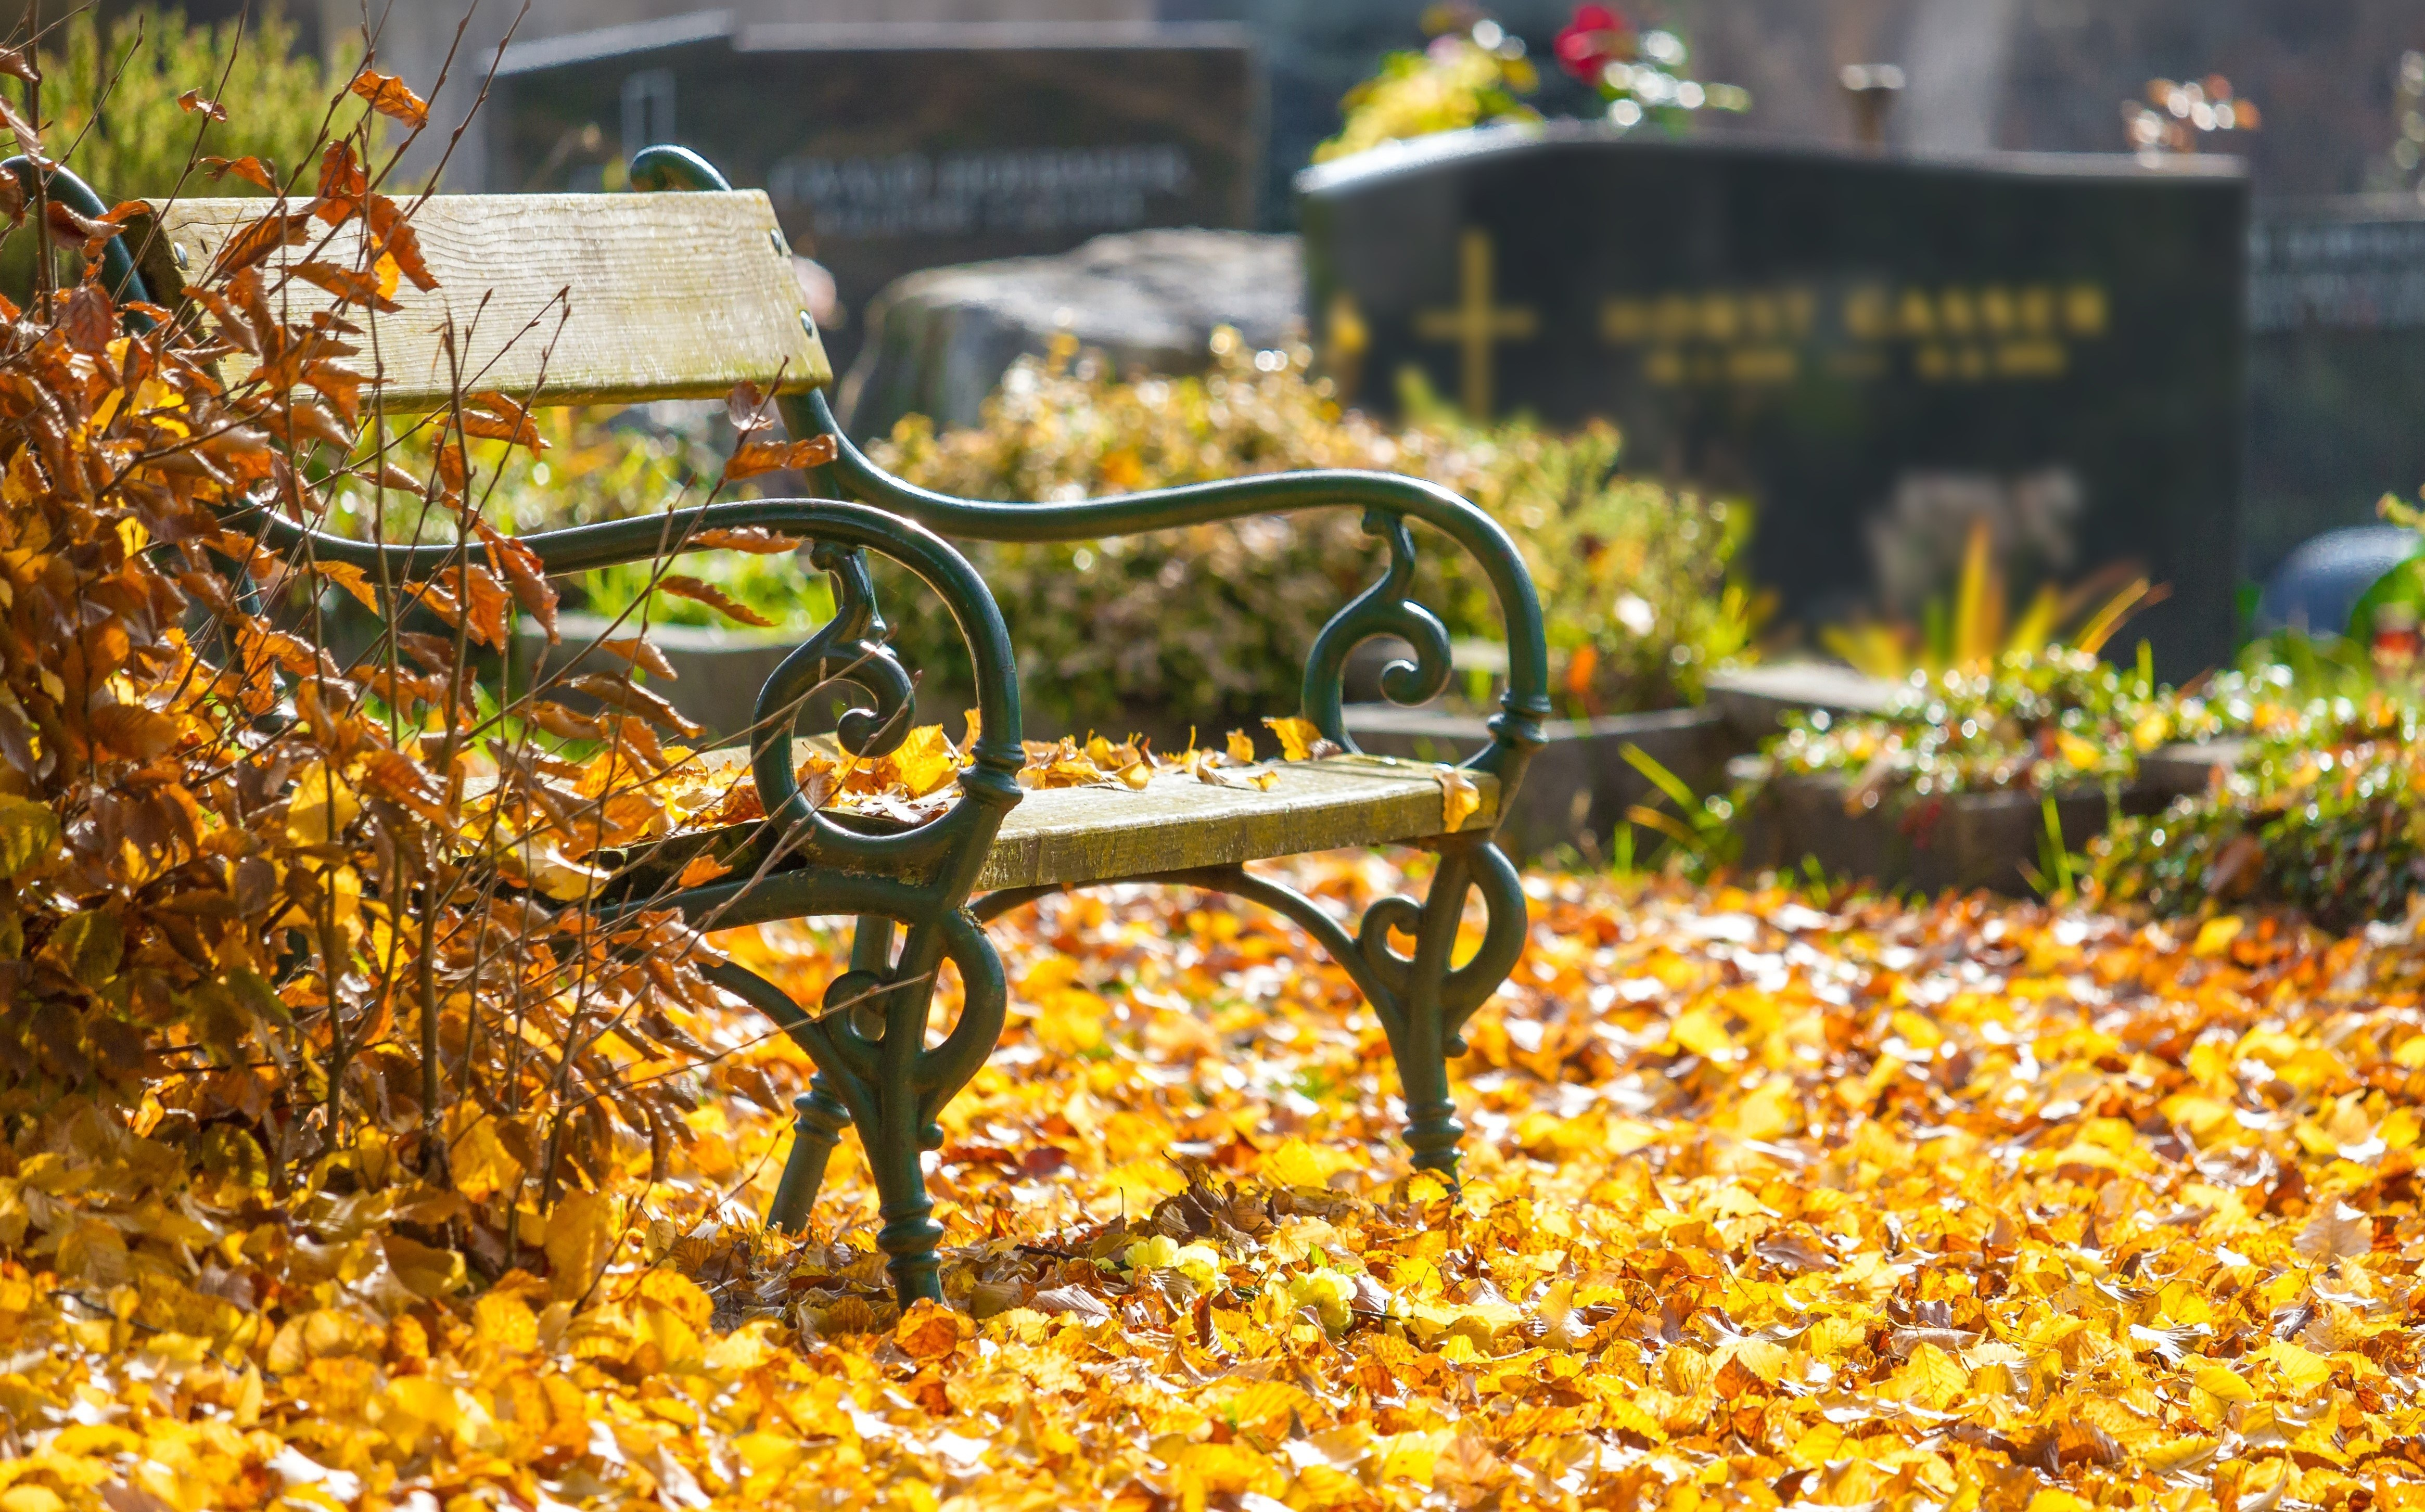 Image shows a cemetery bench surrounded by autumn leaves